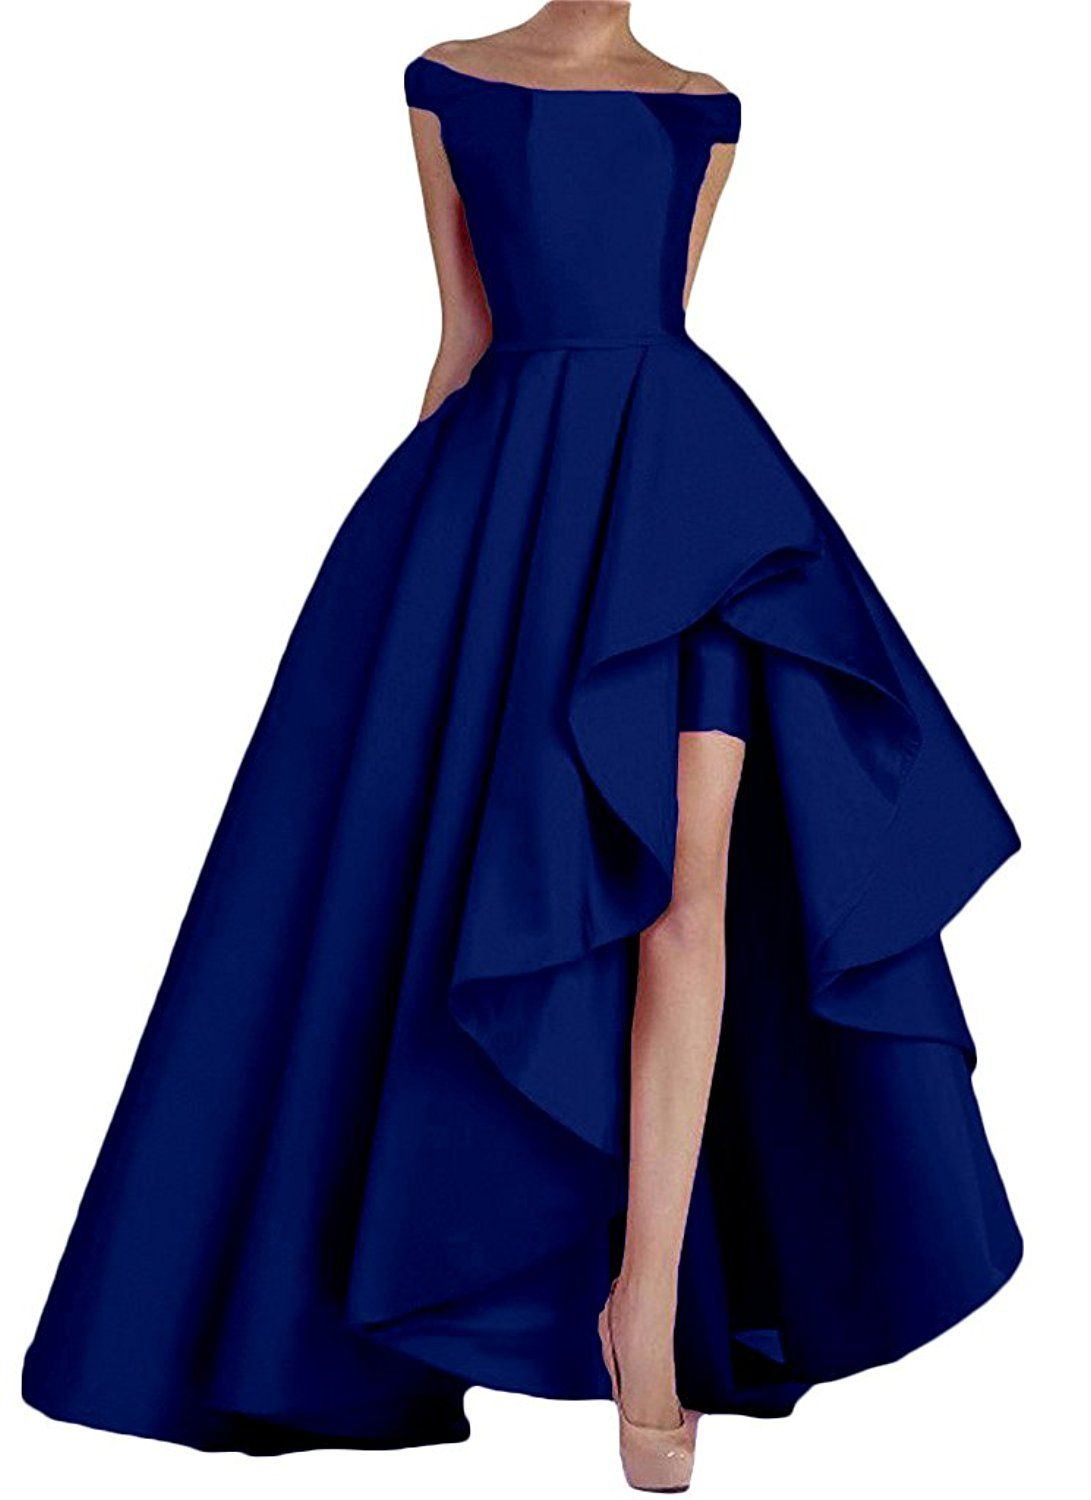 Kevins Bridal Women s Off Shoulder Long Evening Prom Dresses High Low  Formal Gowns at Amazon Women s Clothing store  915ad8a7d88a